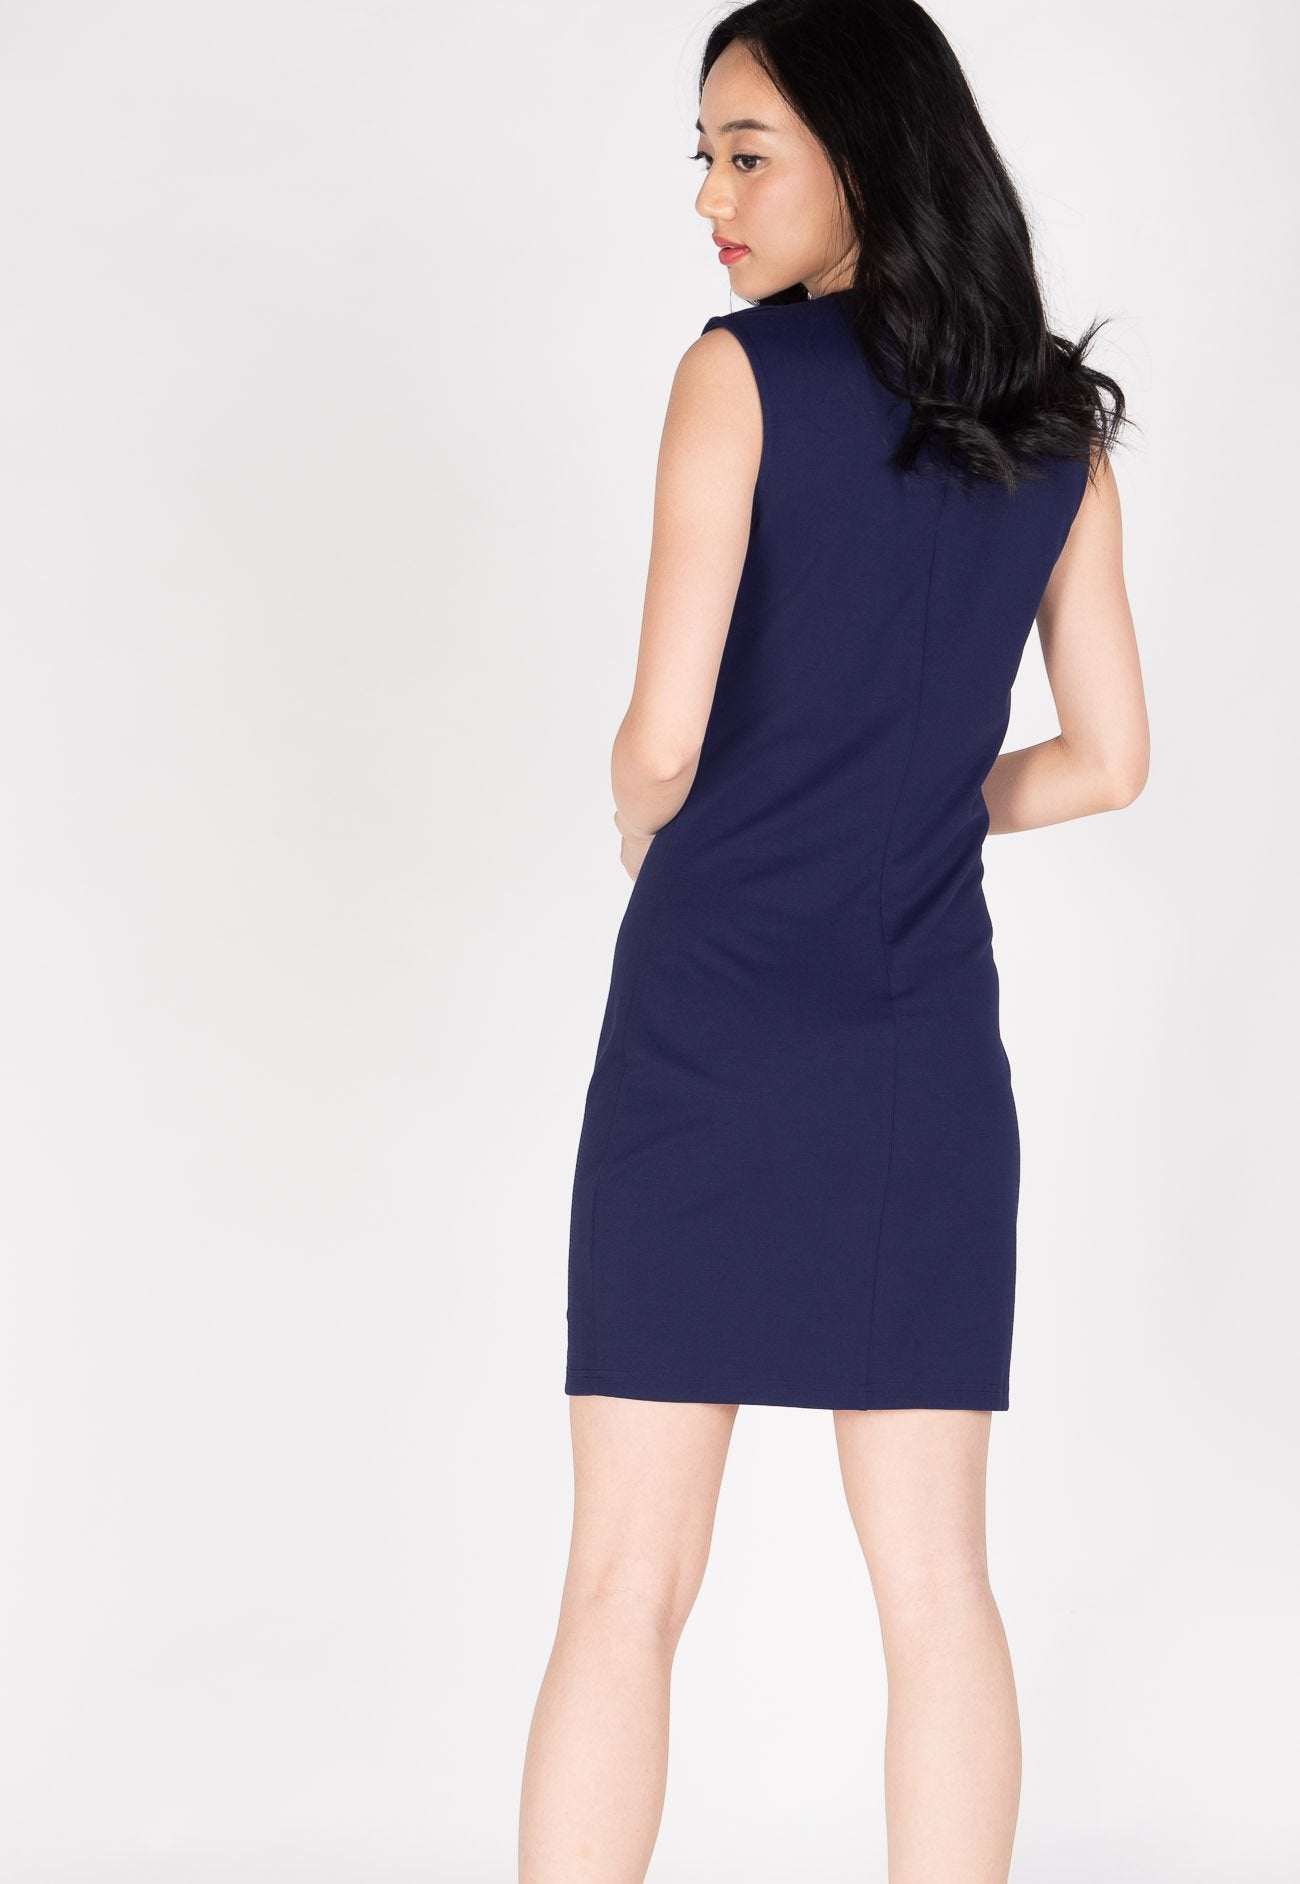 d16cfb5f95f37 ... Belva Chain Nursing Dress in Navy by Jump Eat Cry - Maternity and nursing  wear